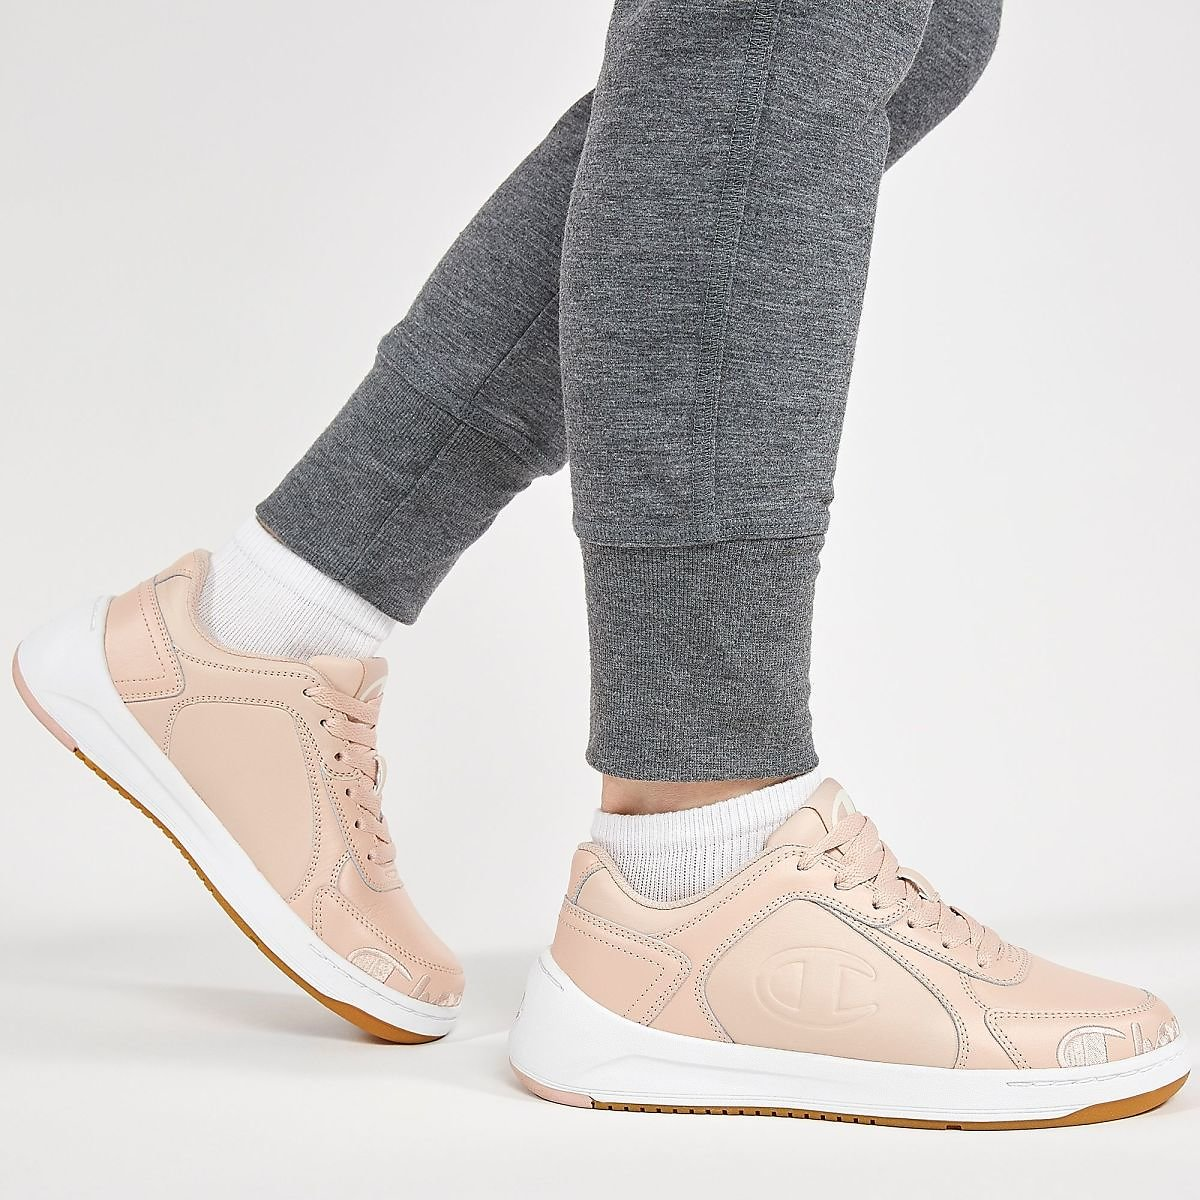 Champion Women's Super C Court Low Shoes